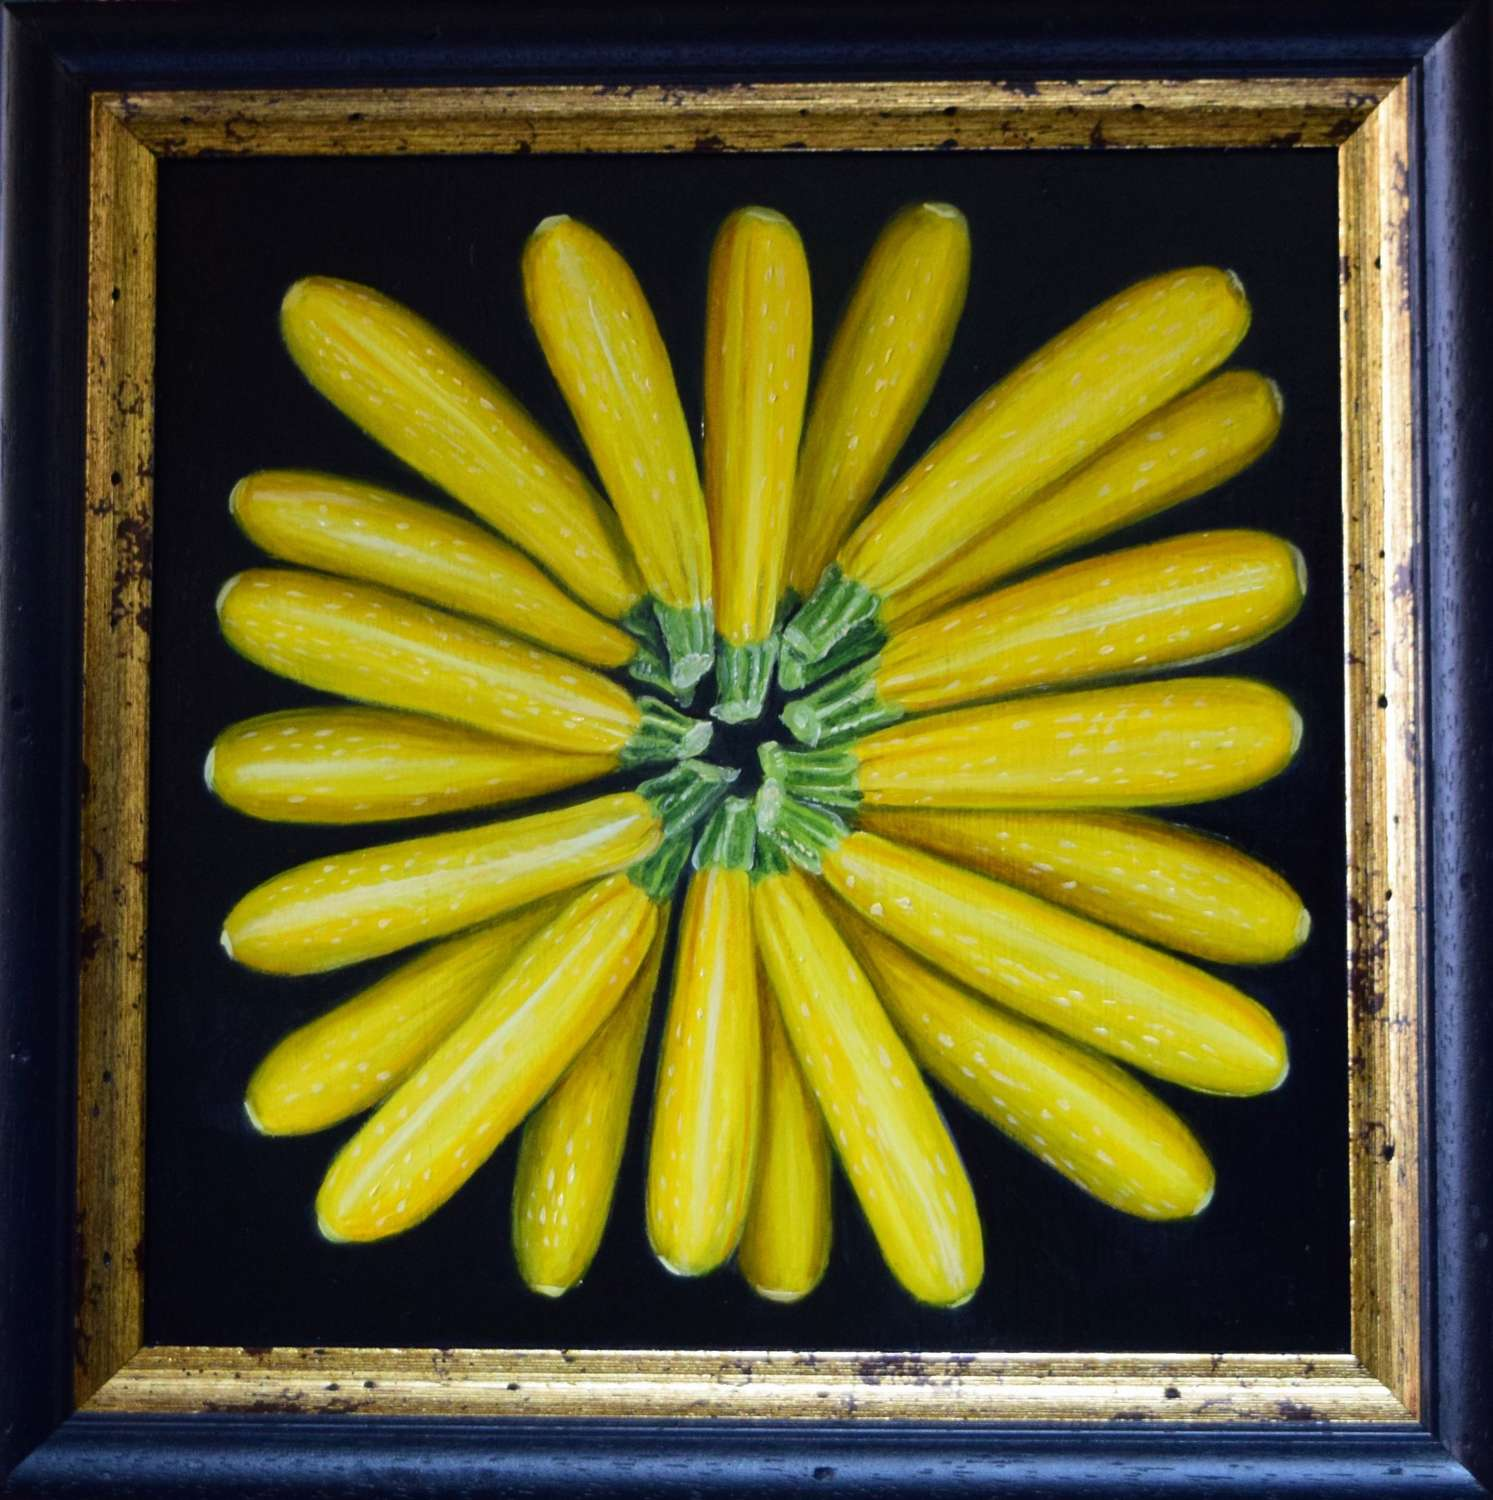 Circle of yellow courgettes